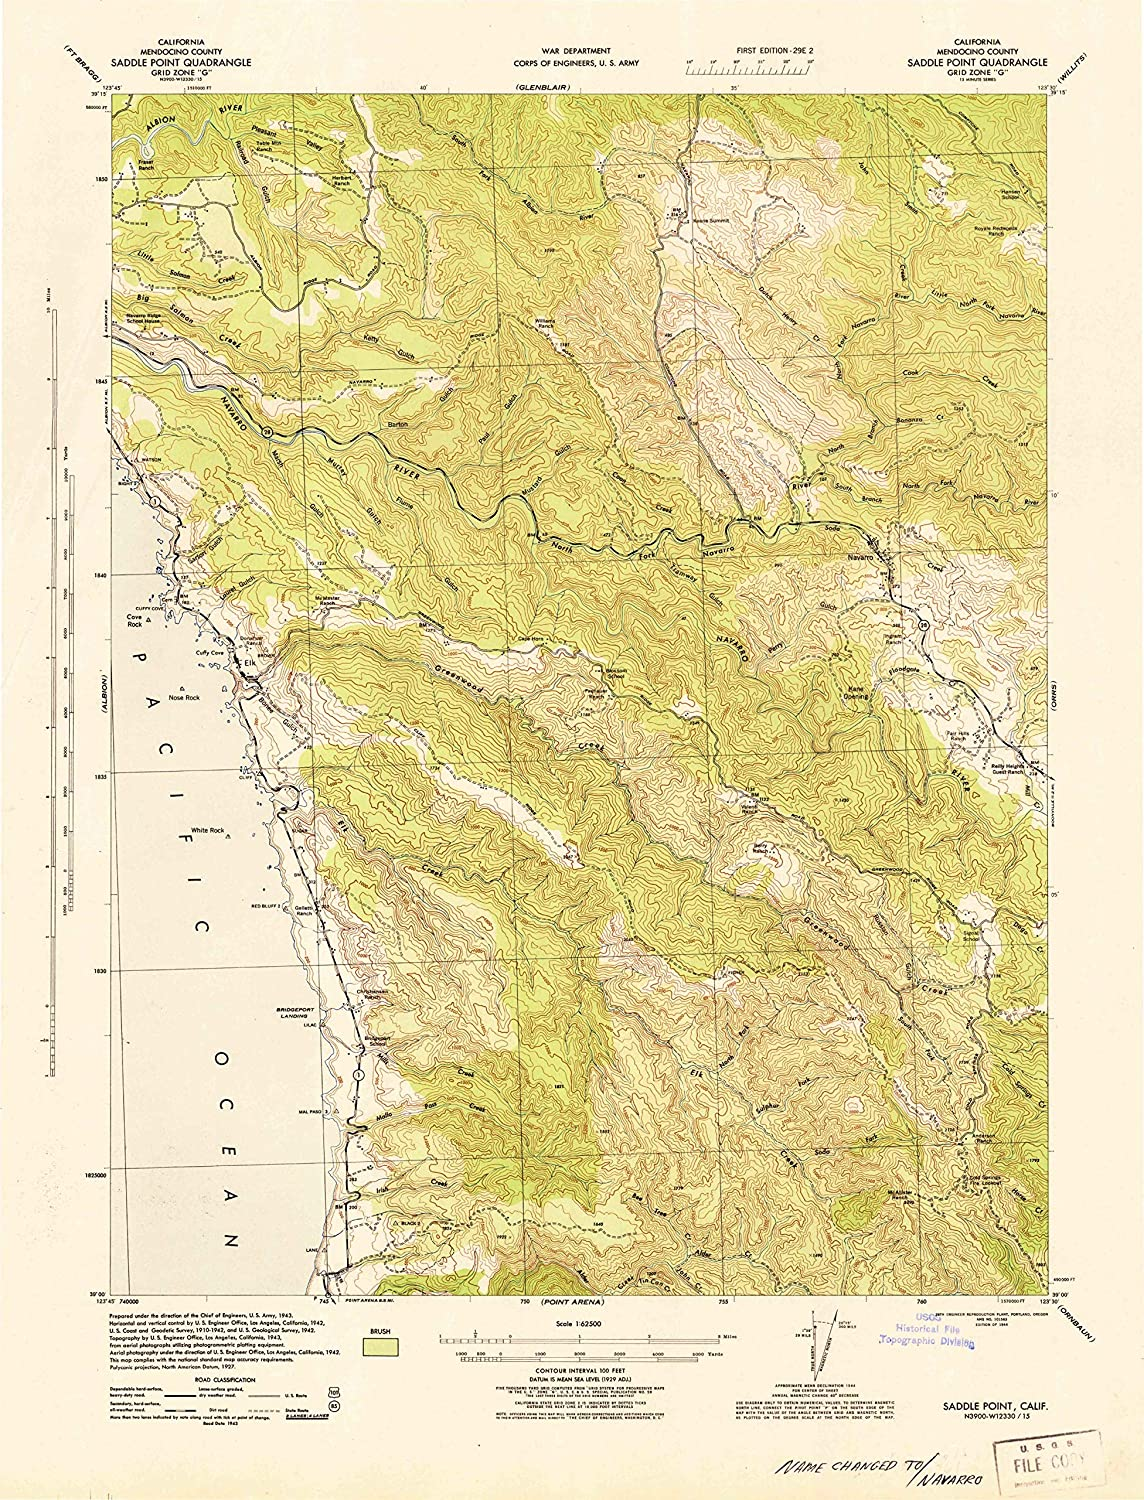 Map Print - Saddle Point, California (1944), 1:62500 Scale - 24